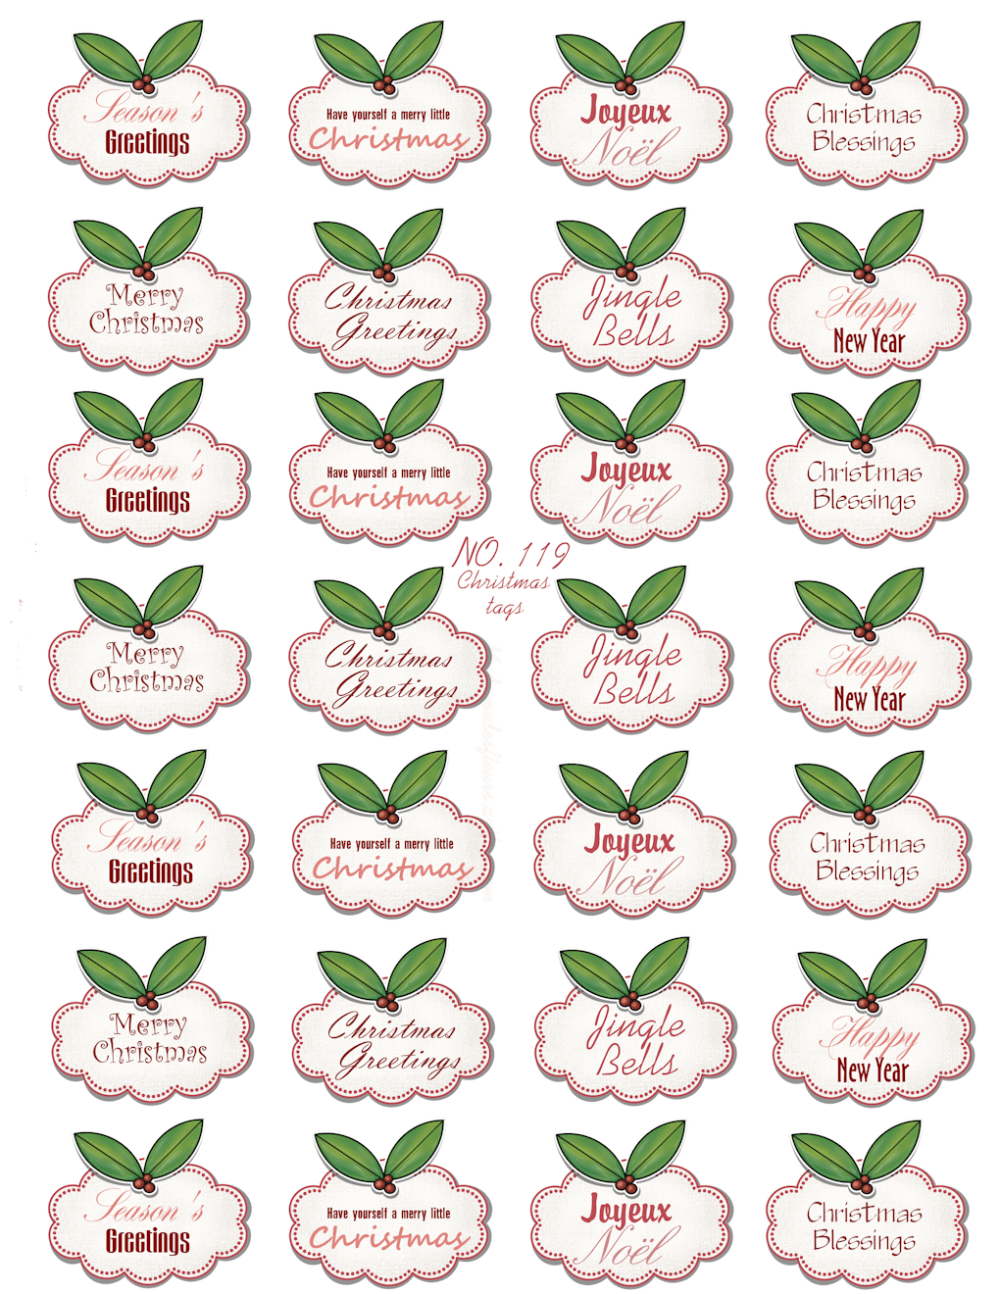 Collage sheet example Christmas wordart tags no. 119 by Ingeborg van Zuiden